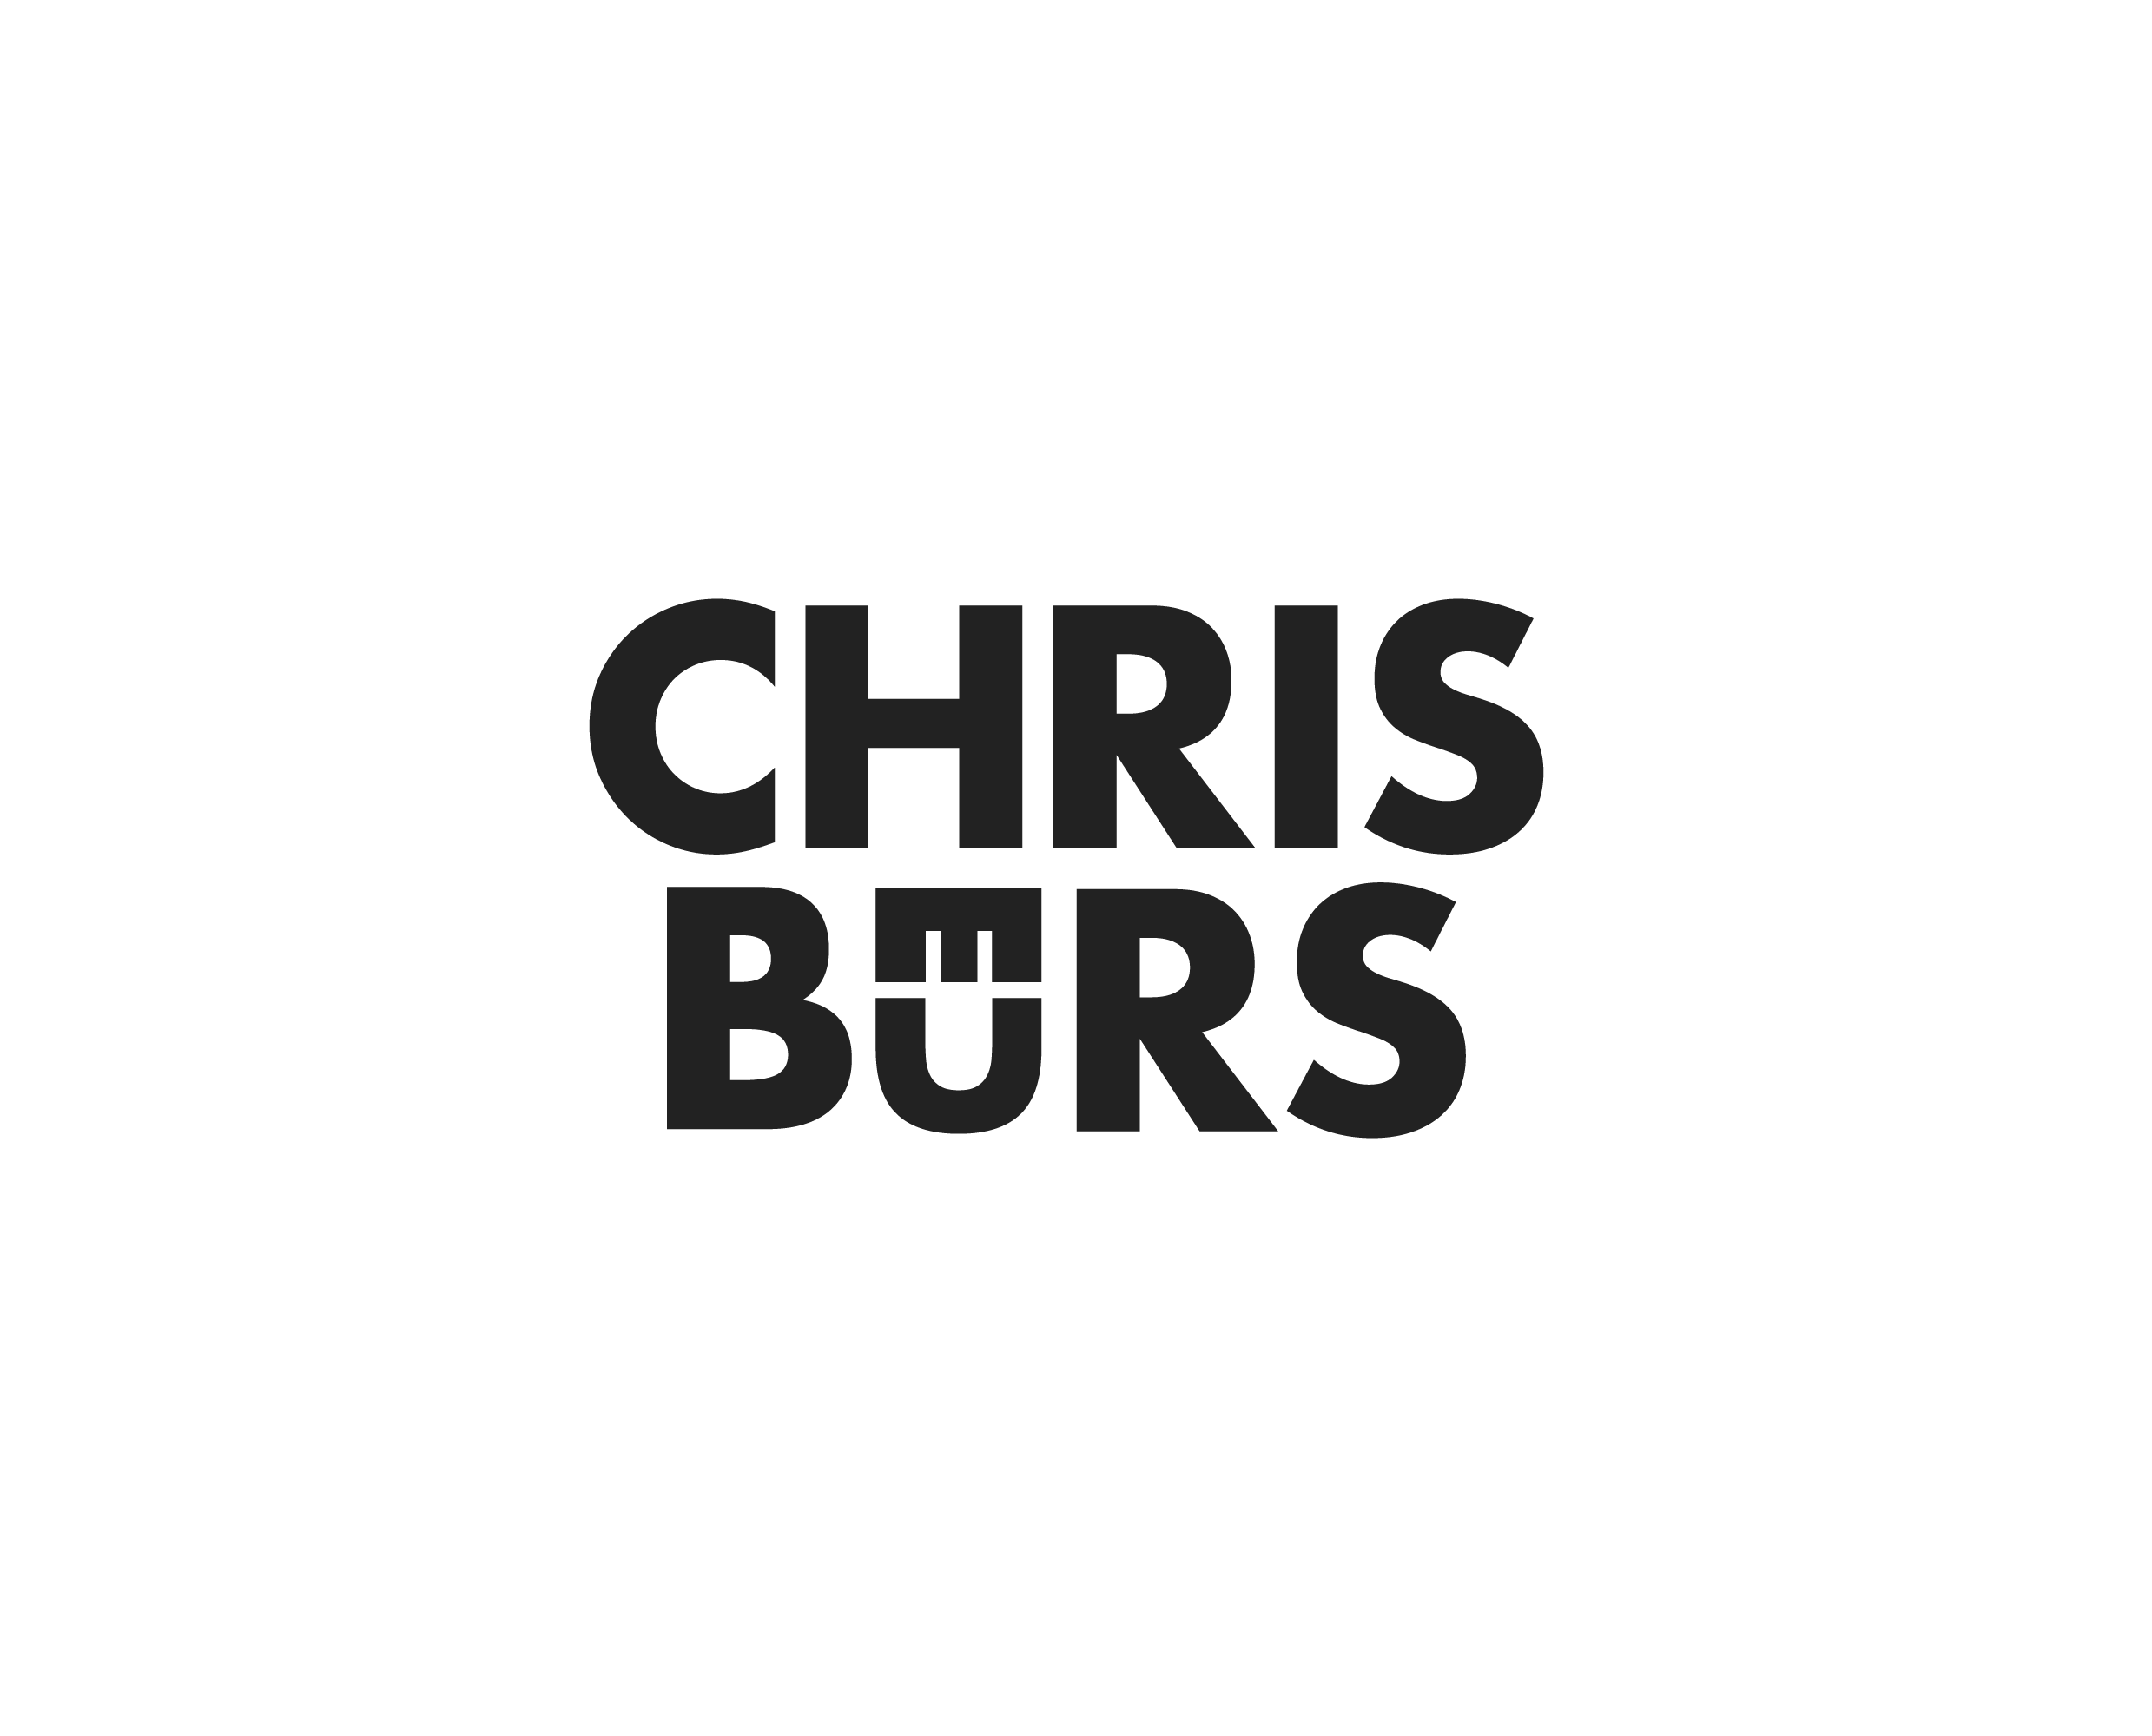 CHRISTOPHER BUERS